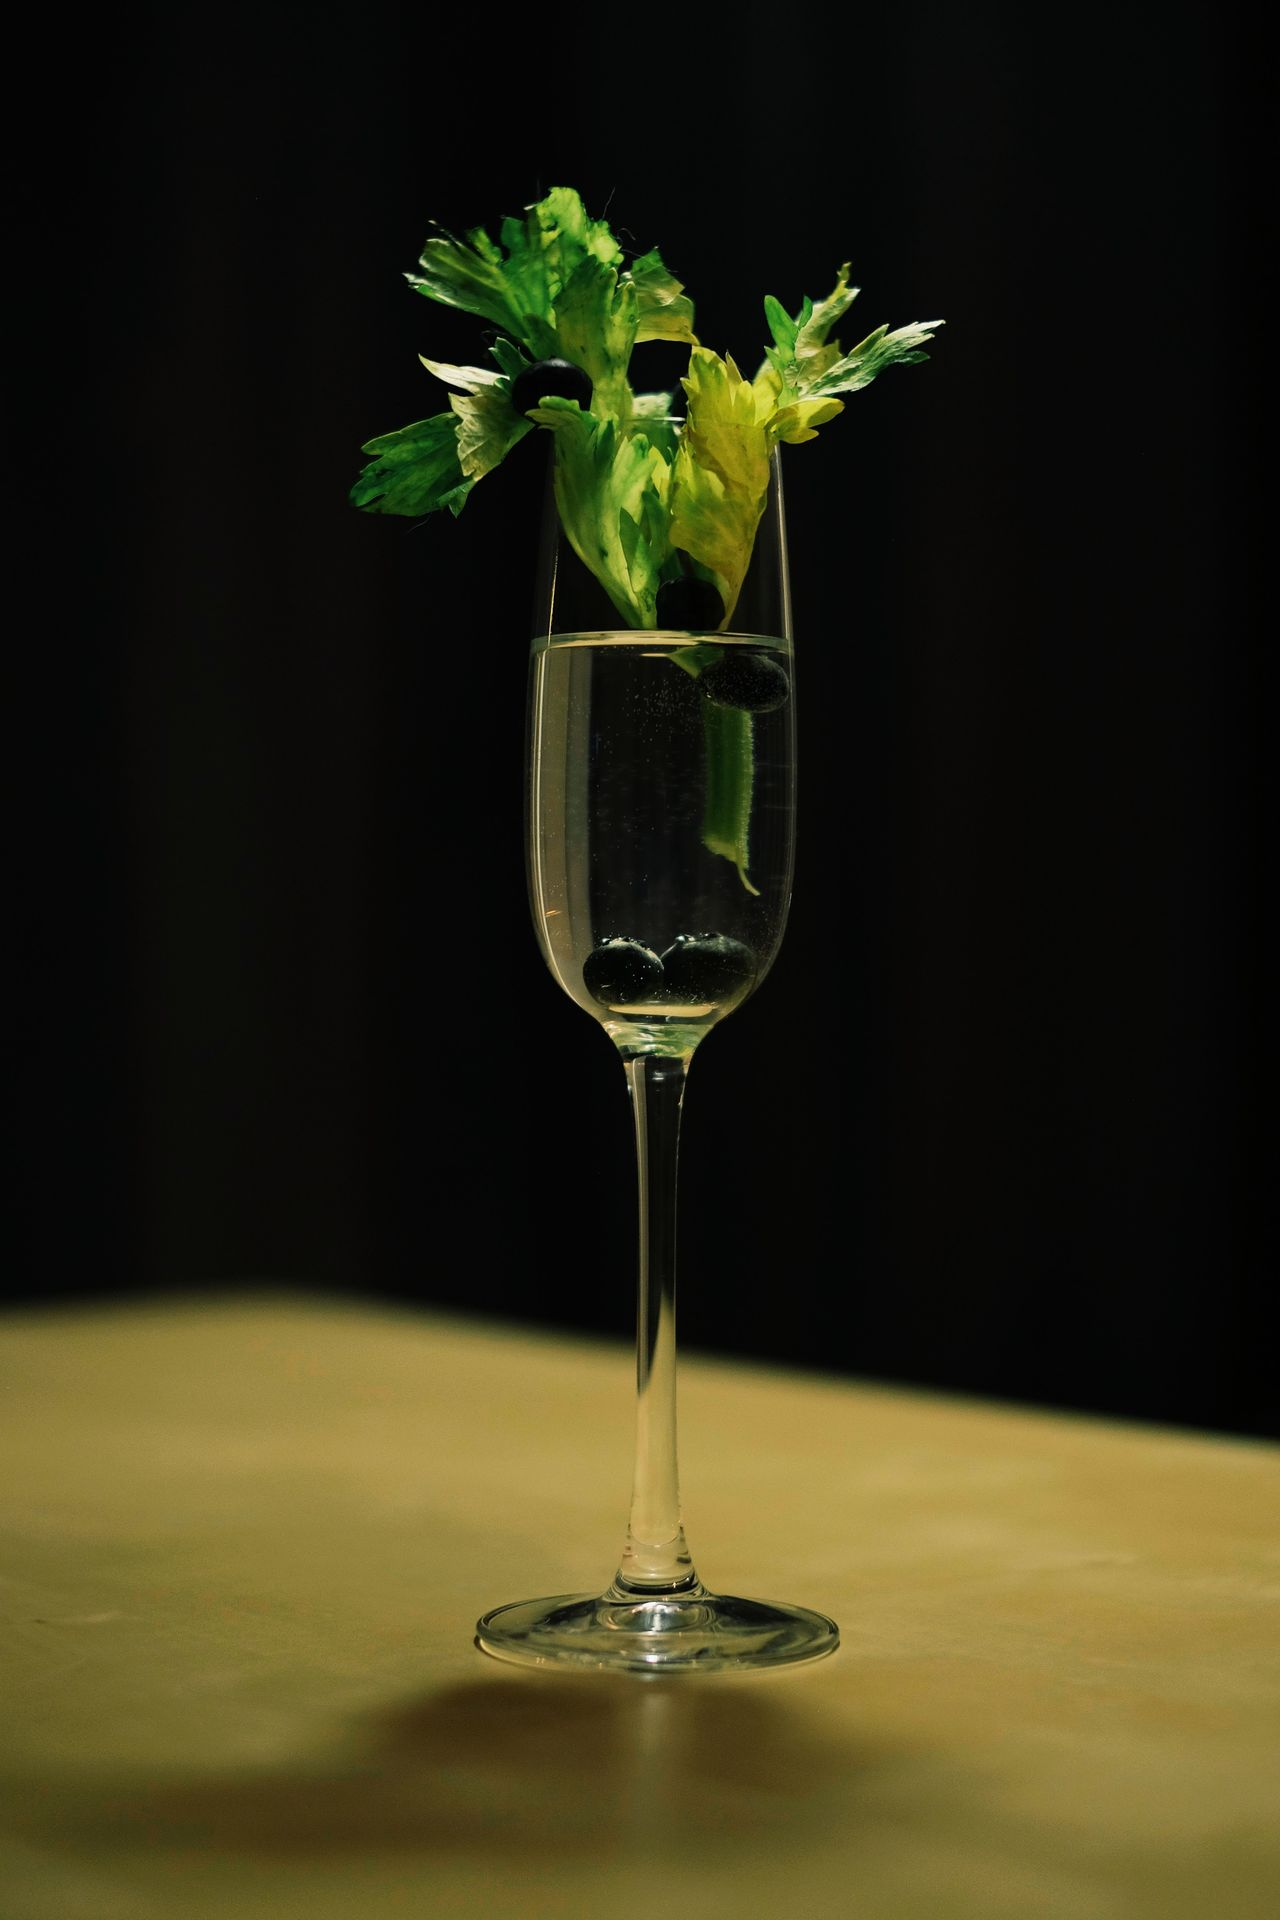 Alcohol Black Background Close-up Day Drinking Glass Freshness Indoors  No People Table Wineglass